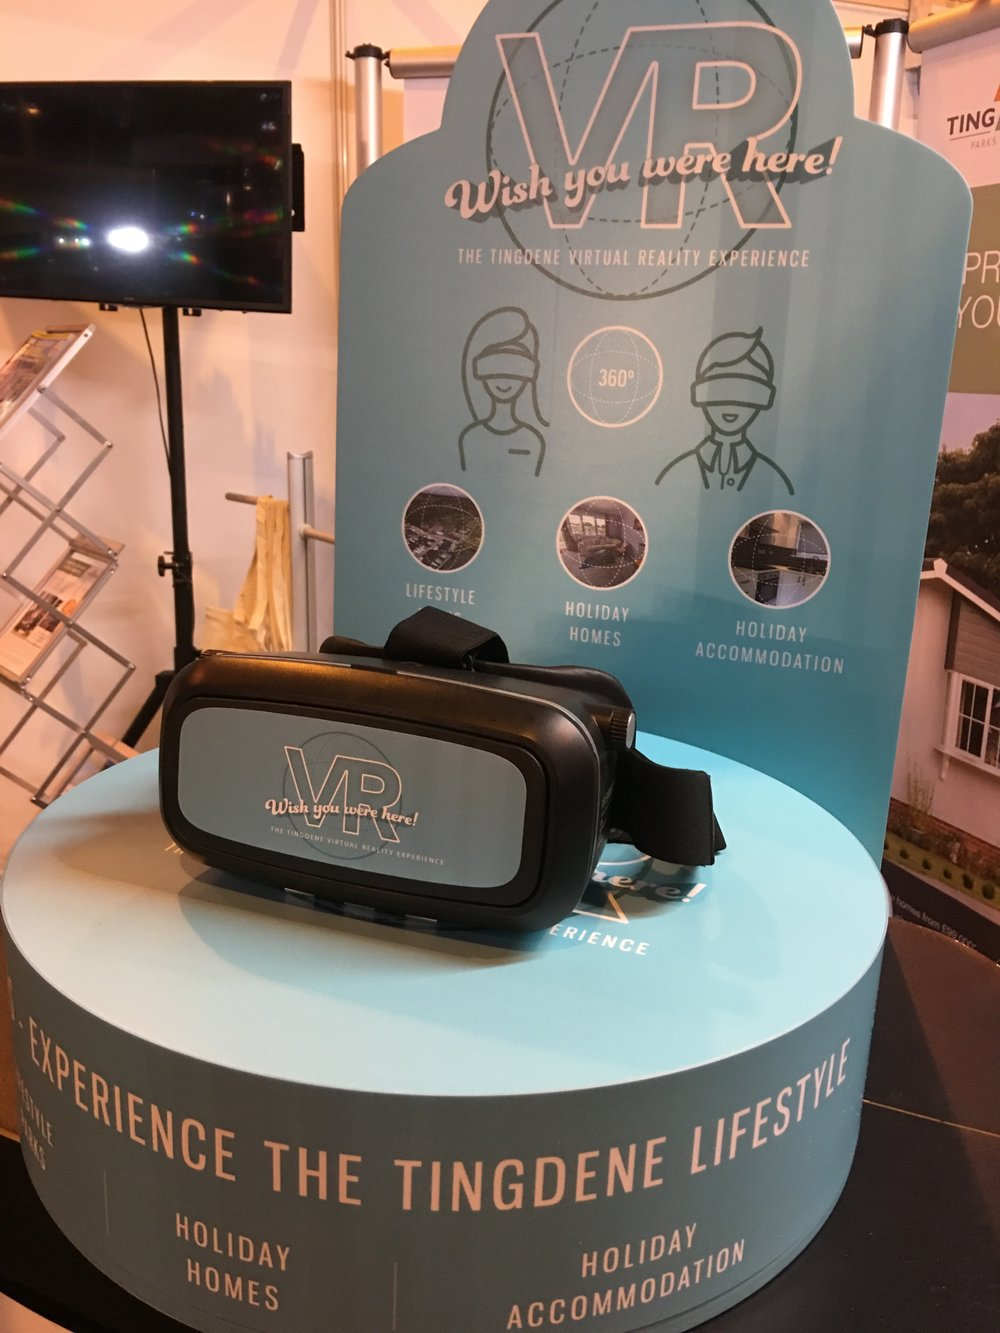 Our New VR station trialled at the Camping, Caravan & Motorhome Show in March 2017.